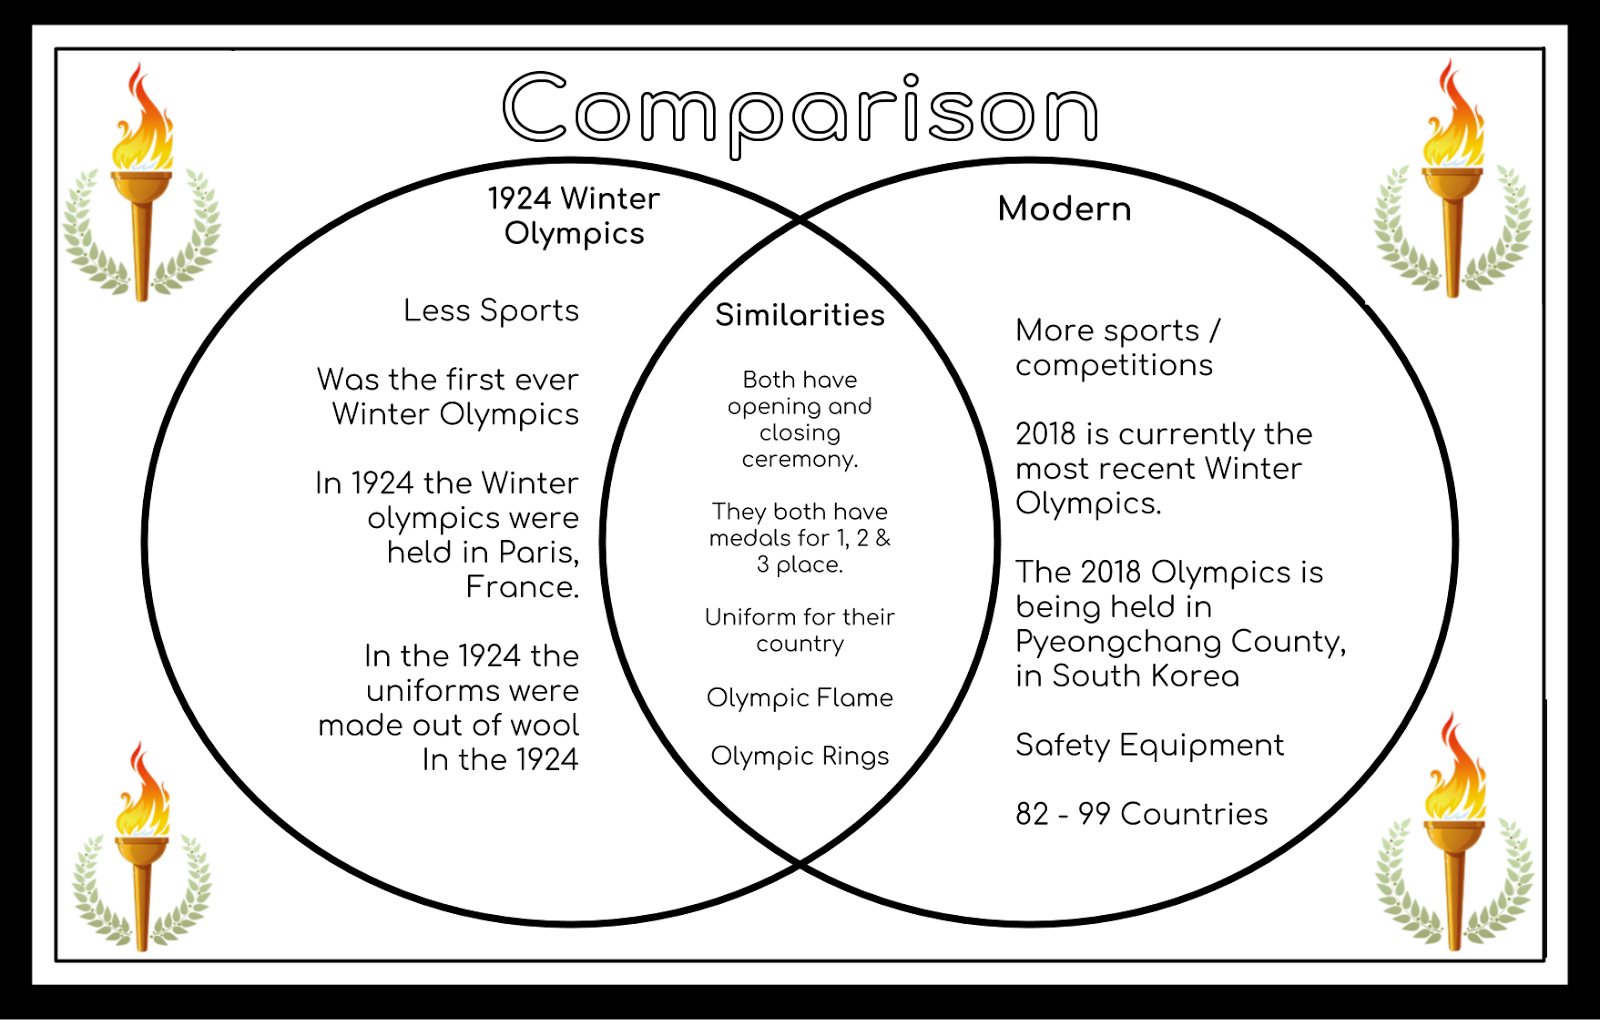 Jack panmure bridge school inquiry winter olympics venn diagram a venn diagram is 2 circles put together with an oval in the middle on the left and right side there would be differences between two different things ccuart Image collections